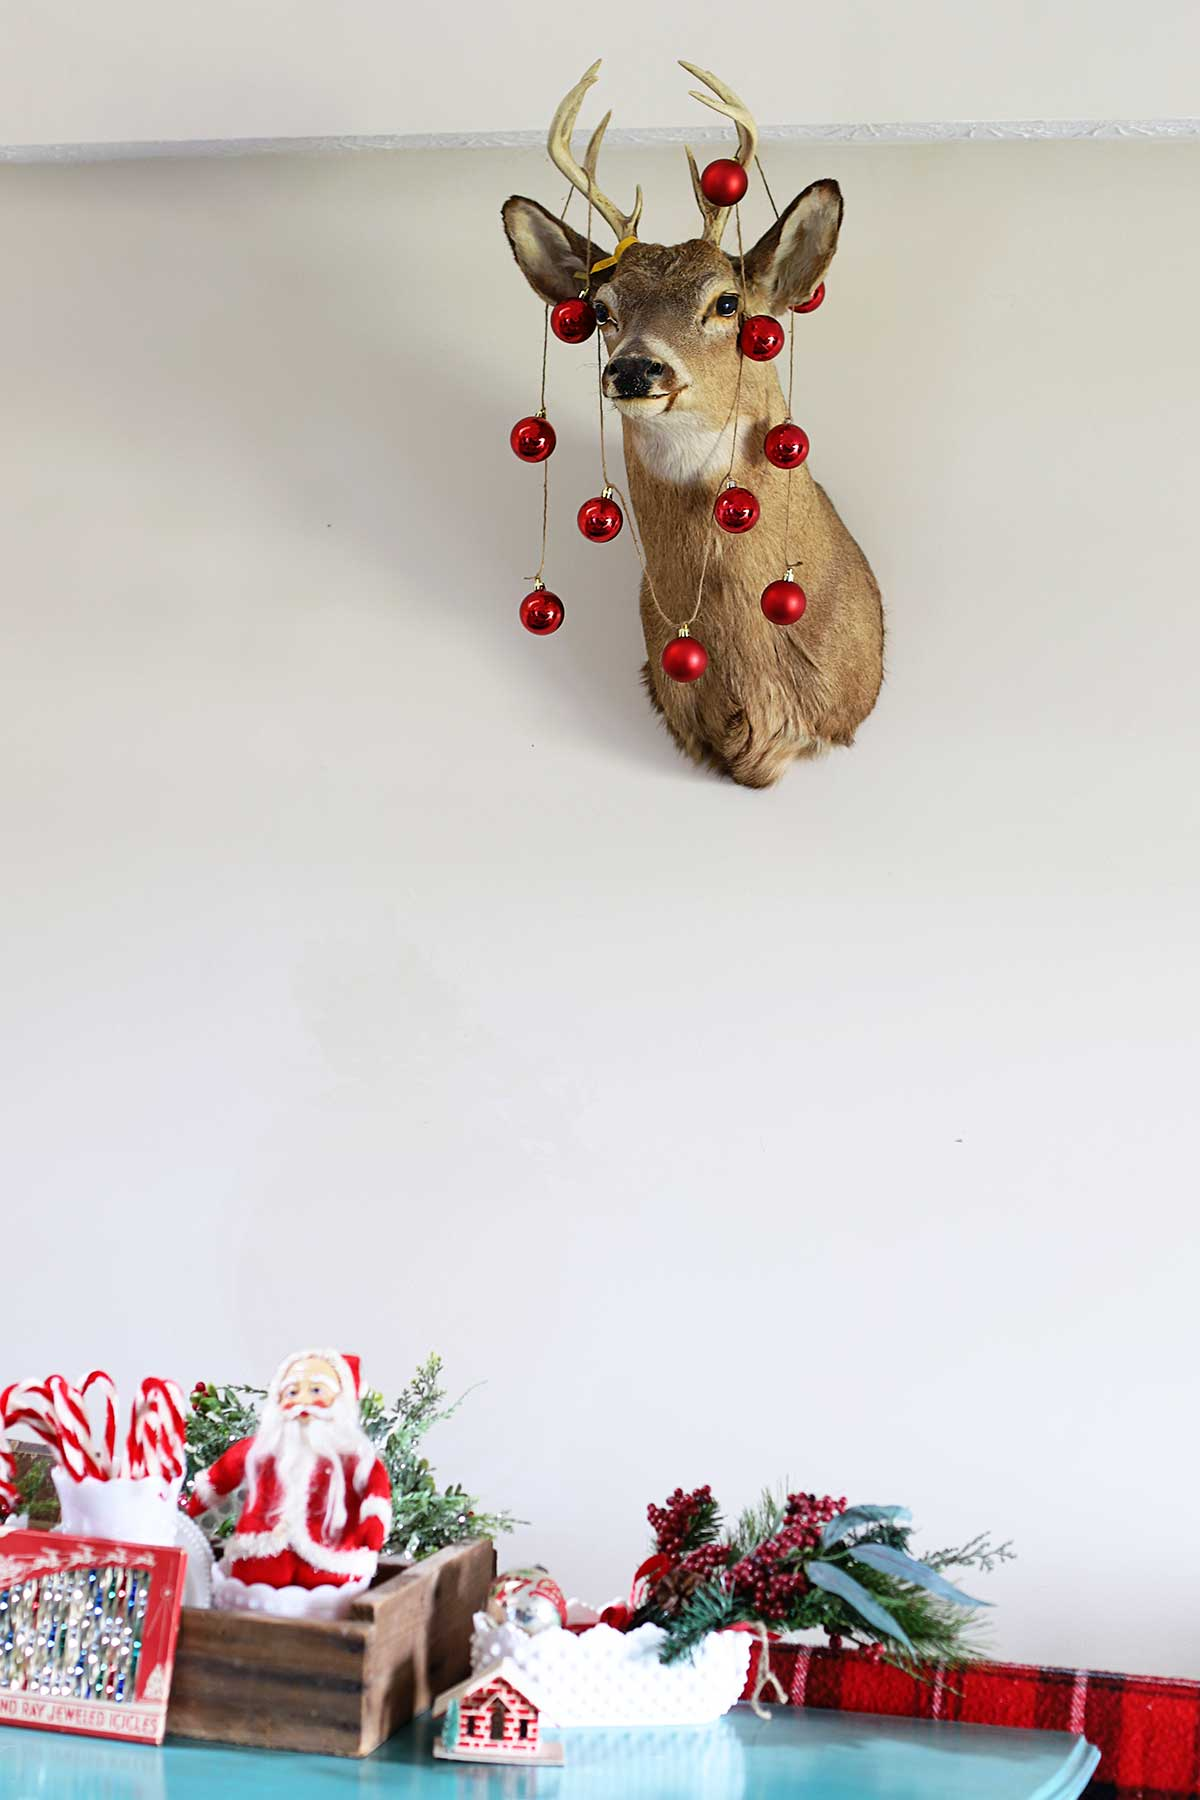 mounted deer head decorated for Christmas with round Christmas ornaments